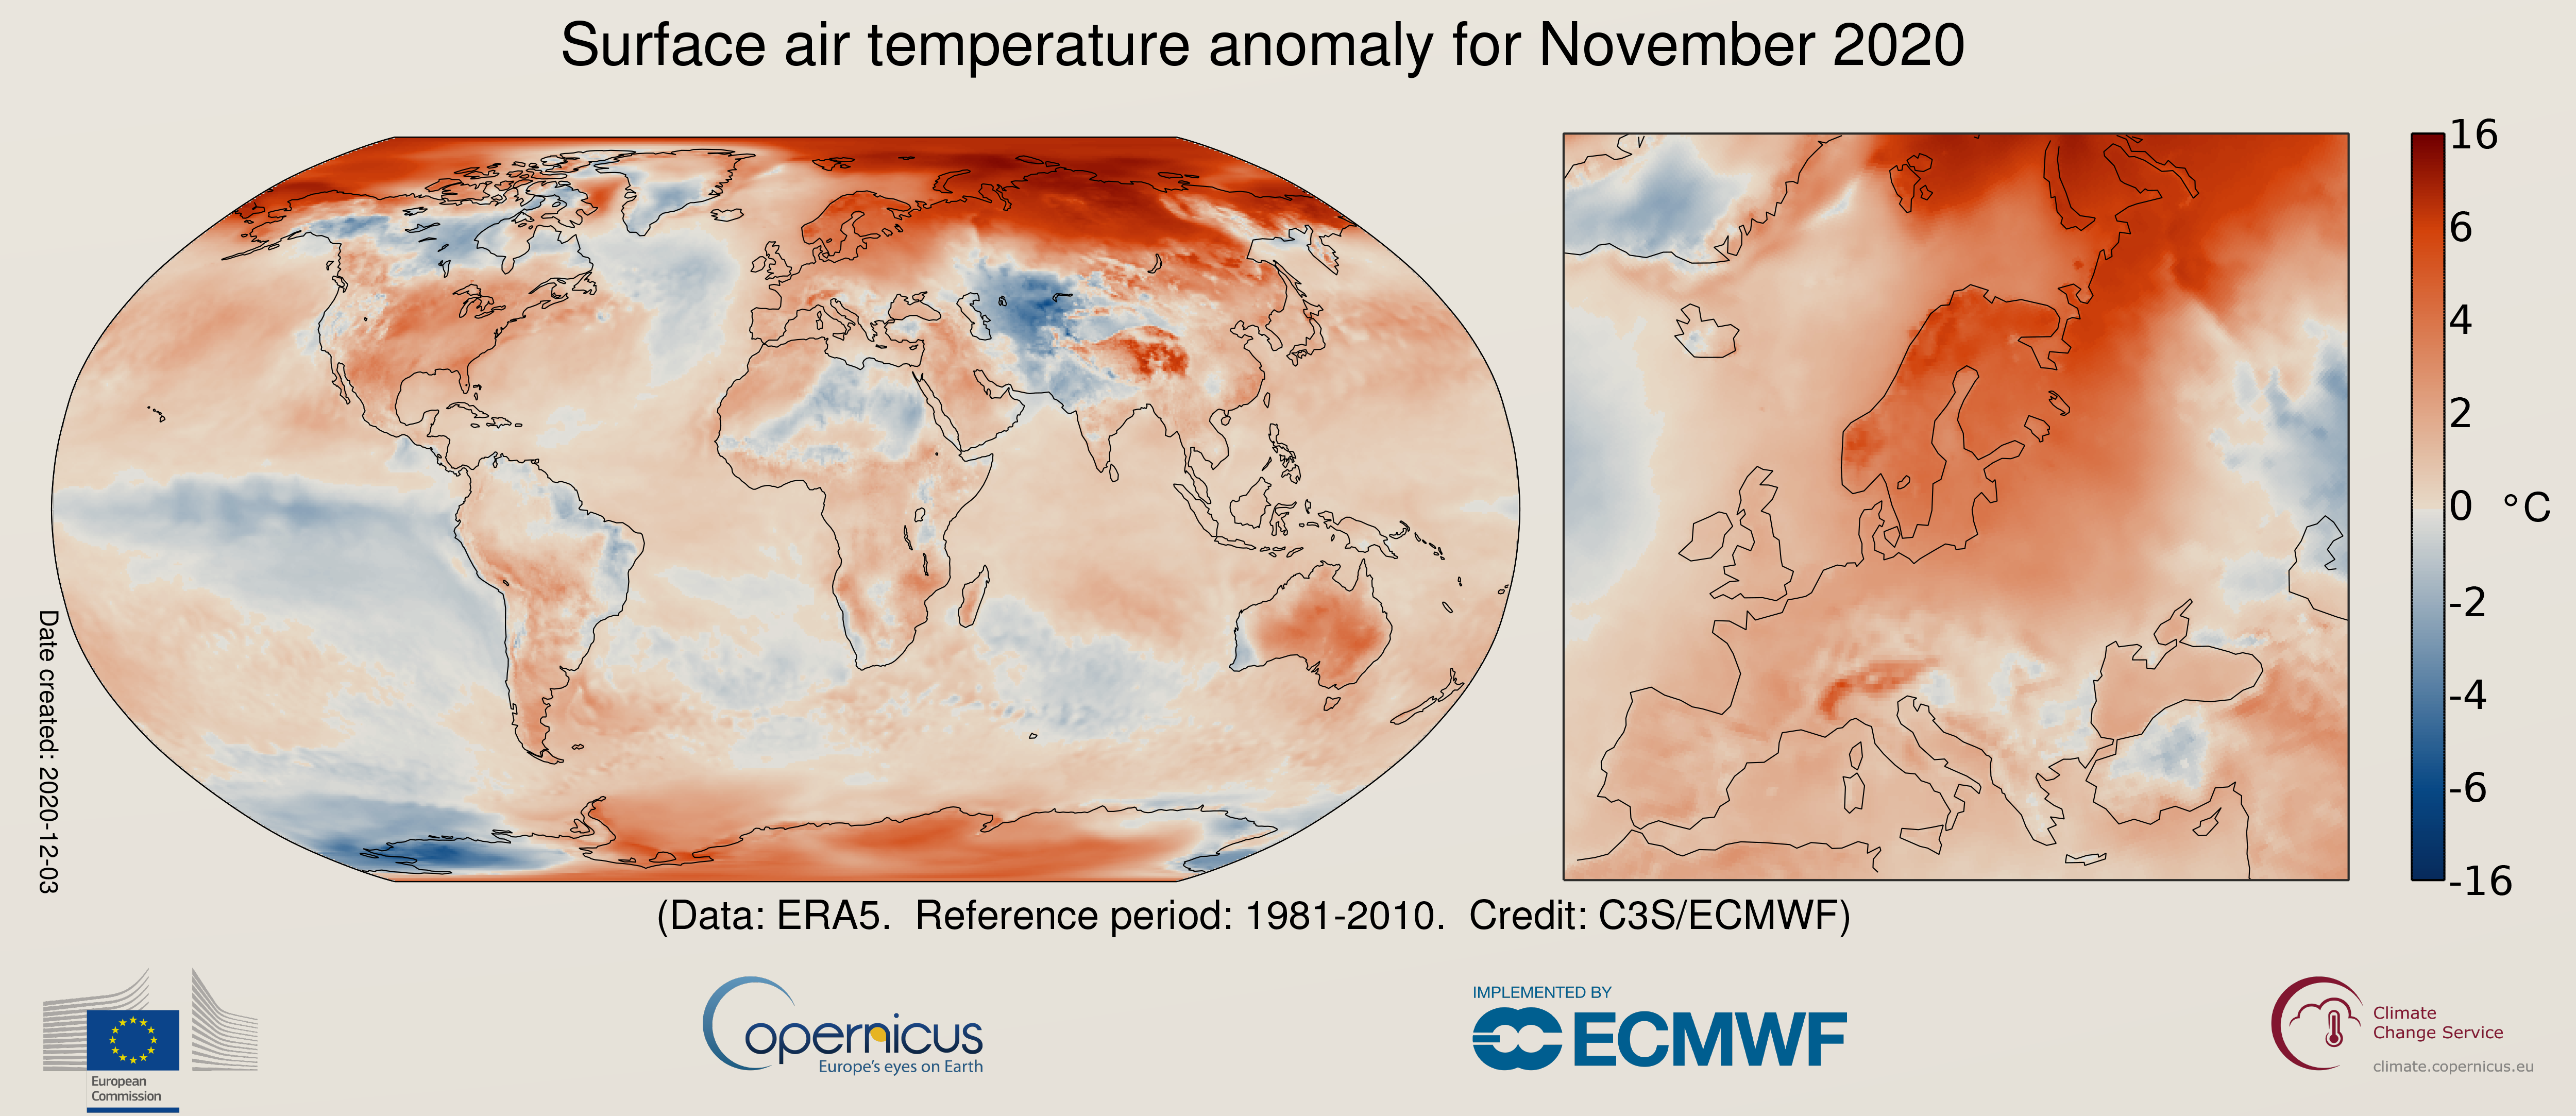 map_1month_anomaly_Global_ea_2t_202011_v02_0   u